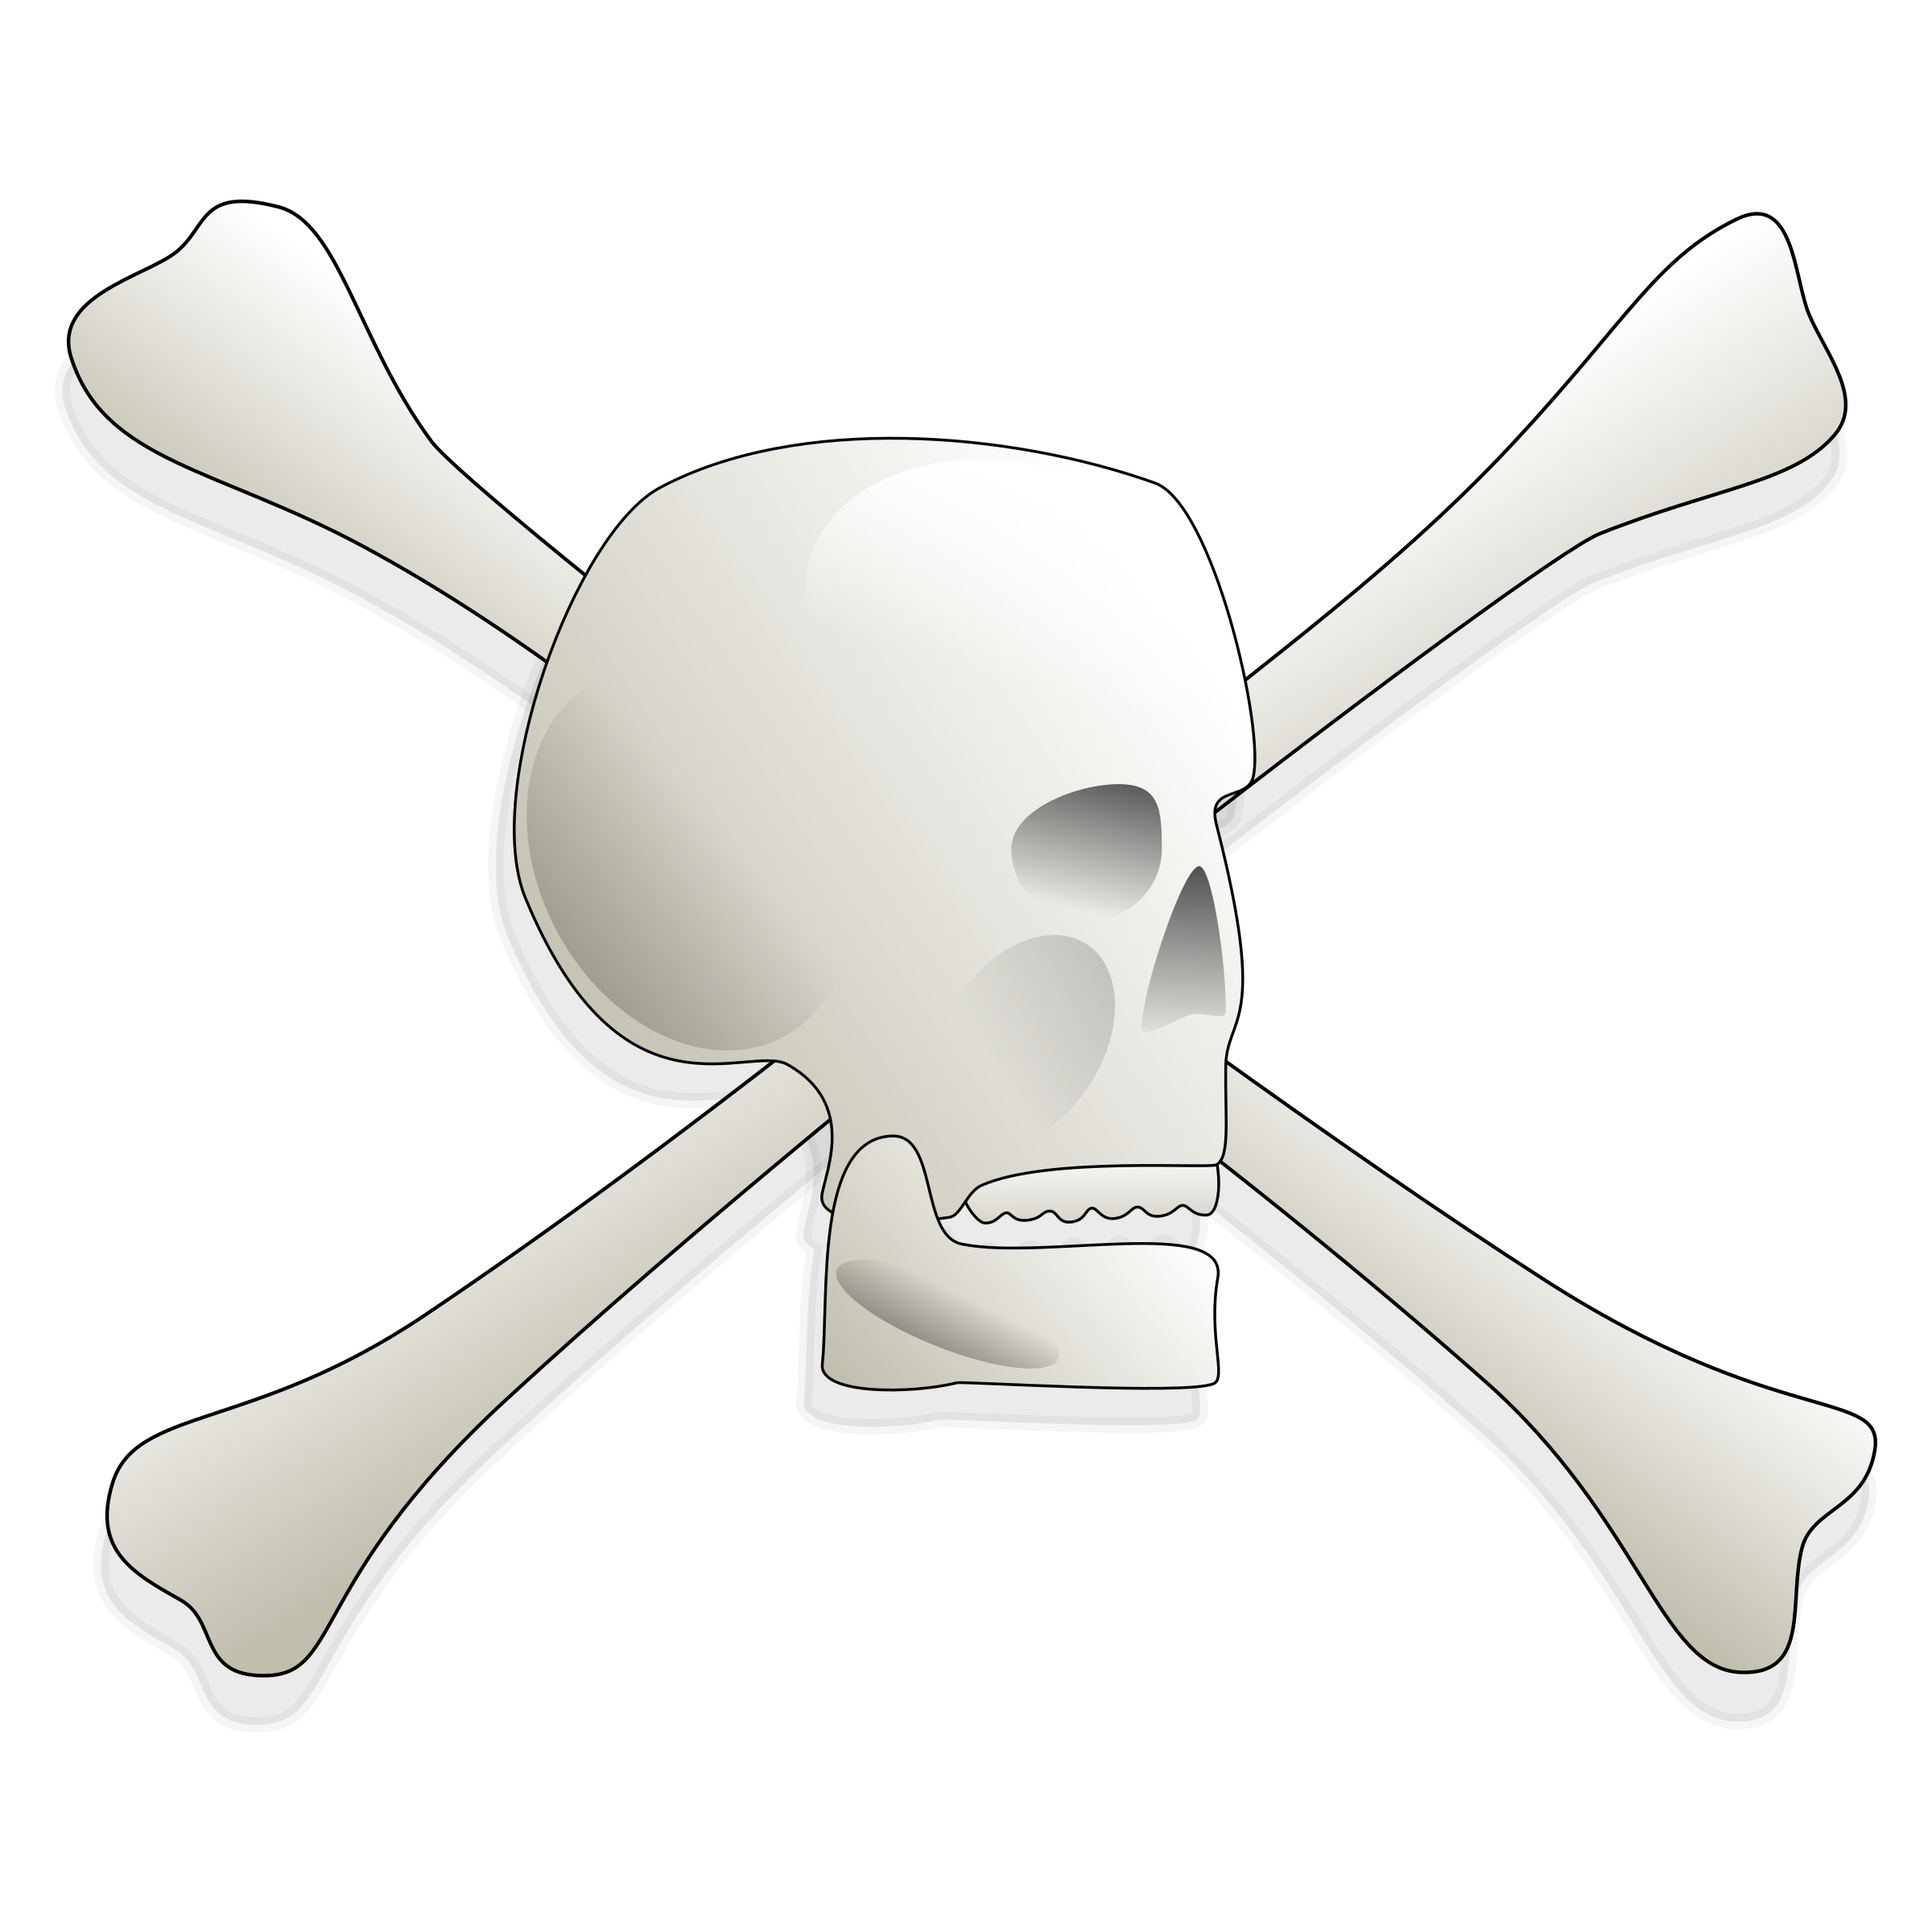 skull-and-bones-aj aj as 01 by AJ